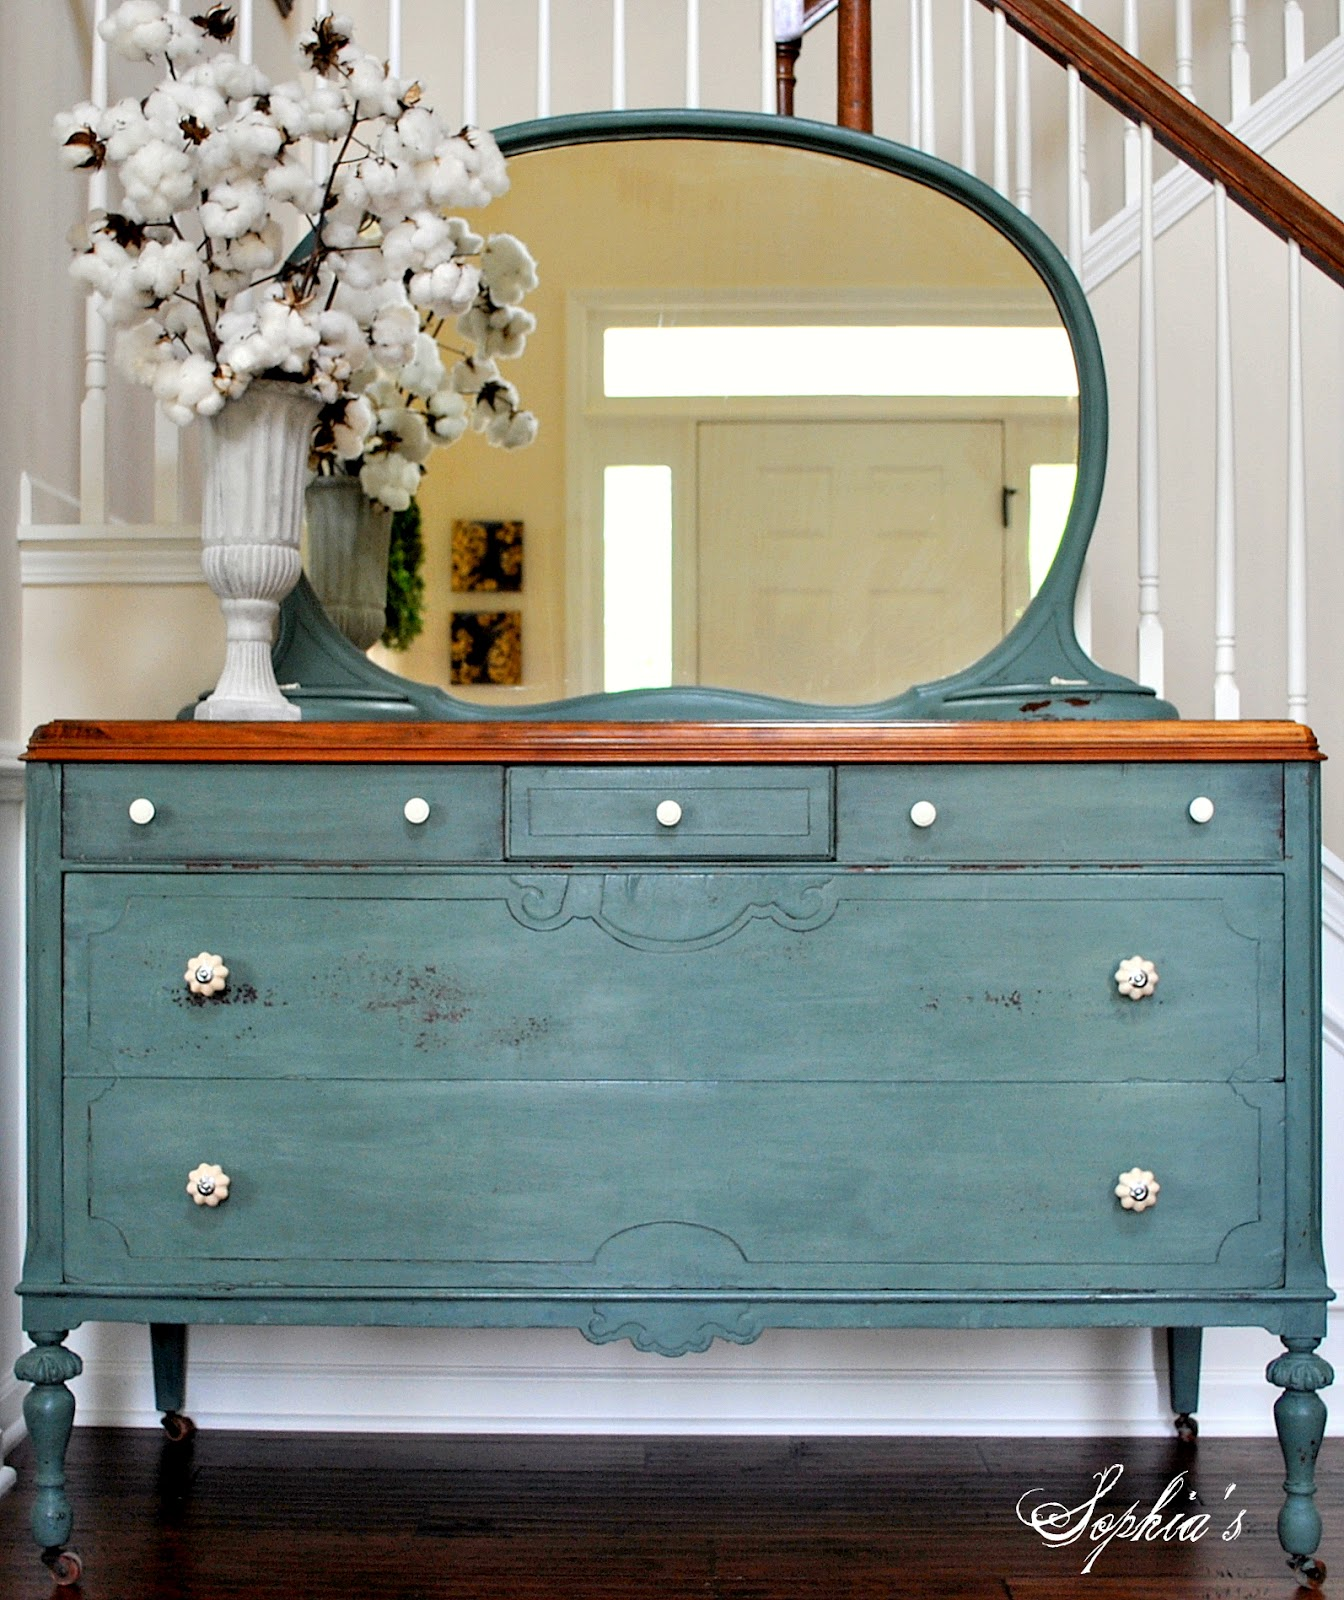 Sophia 39 s milk paint dresser Images of painted furniture